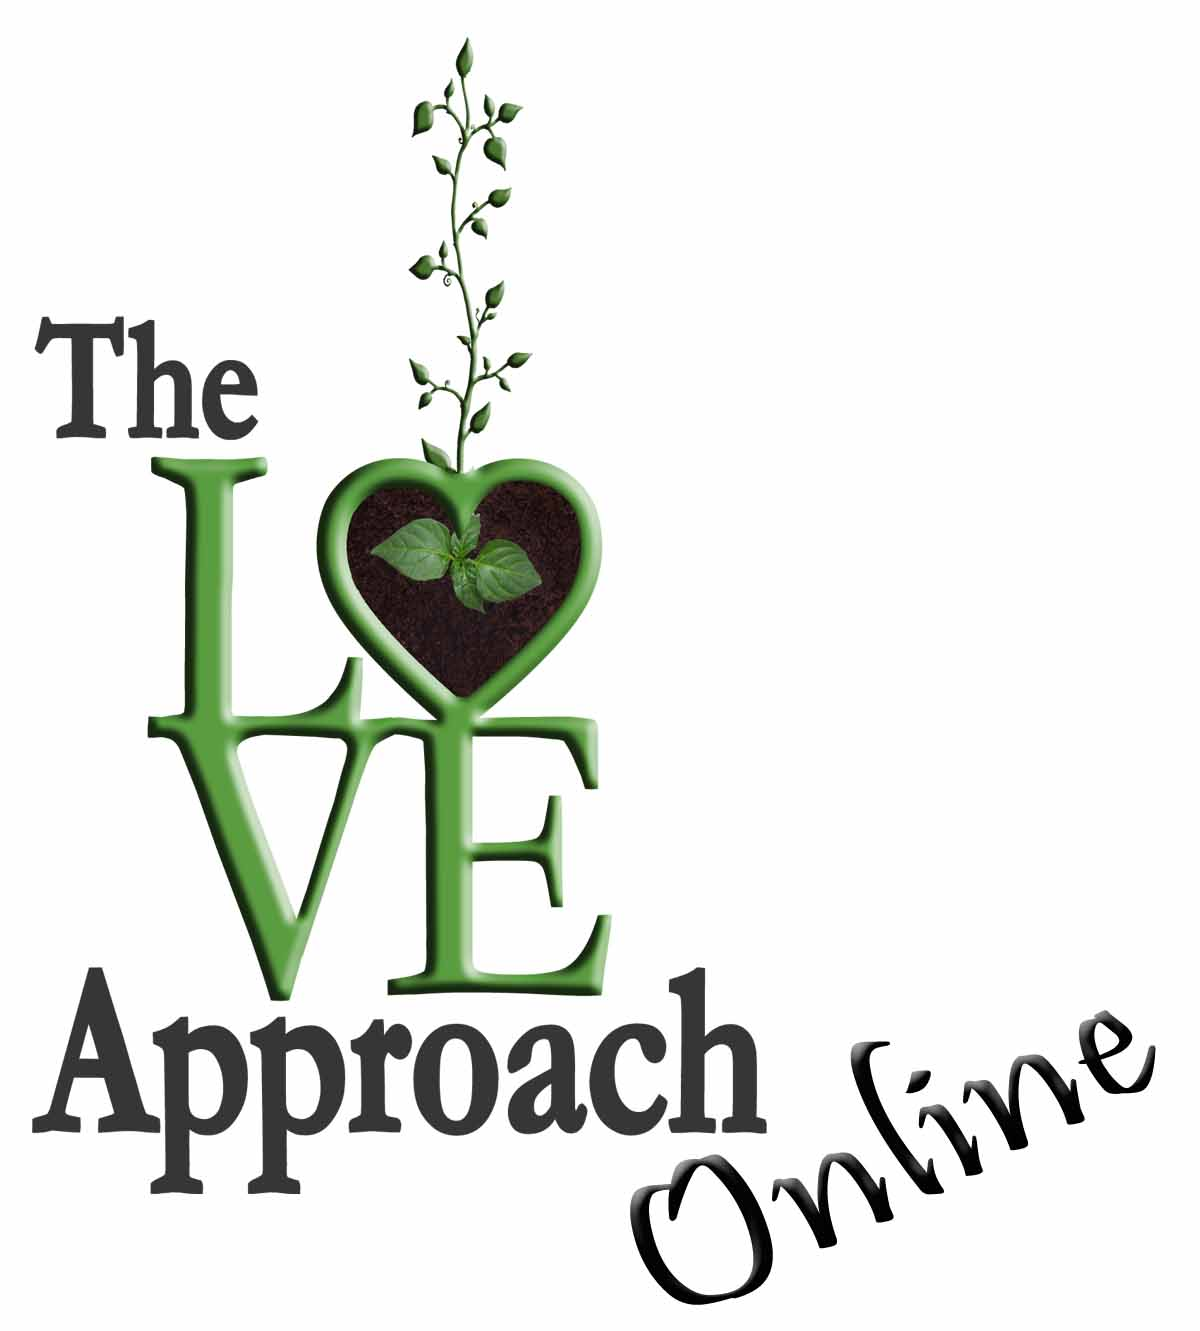 Love_Approach_LMS_Graphic